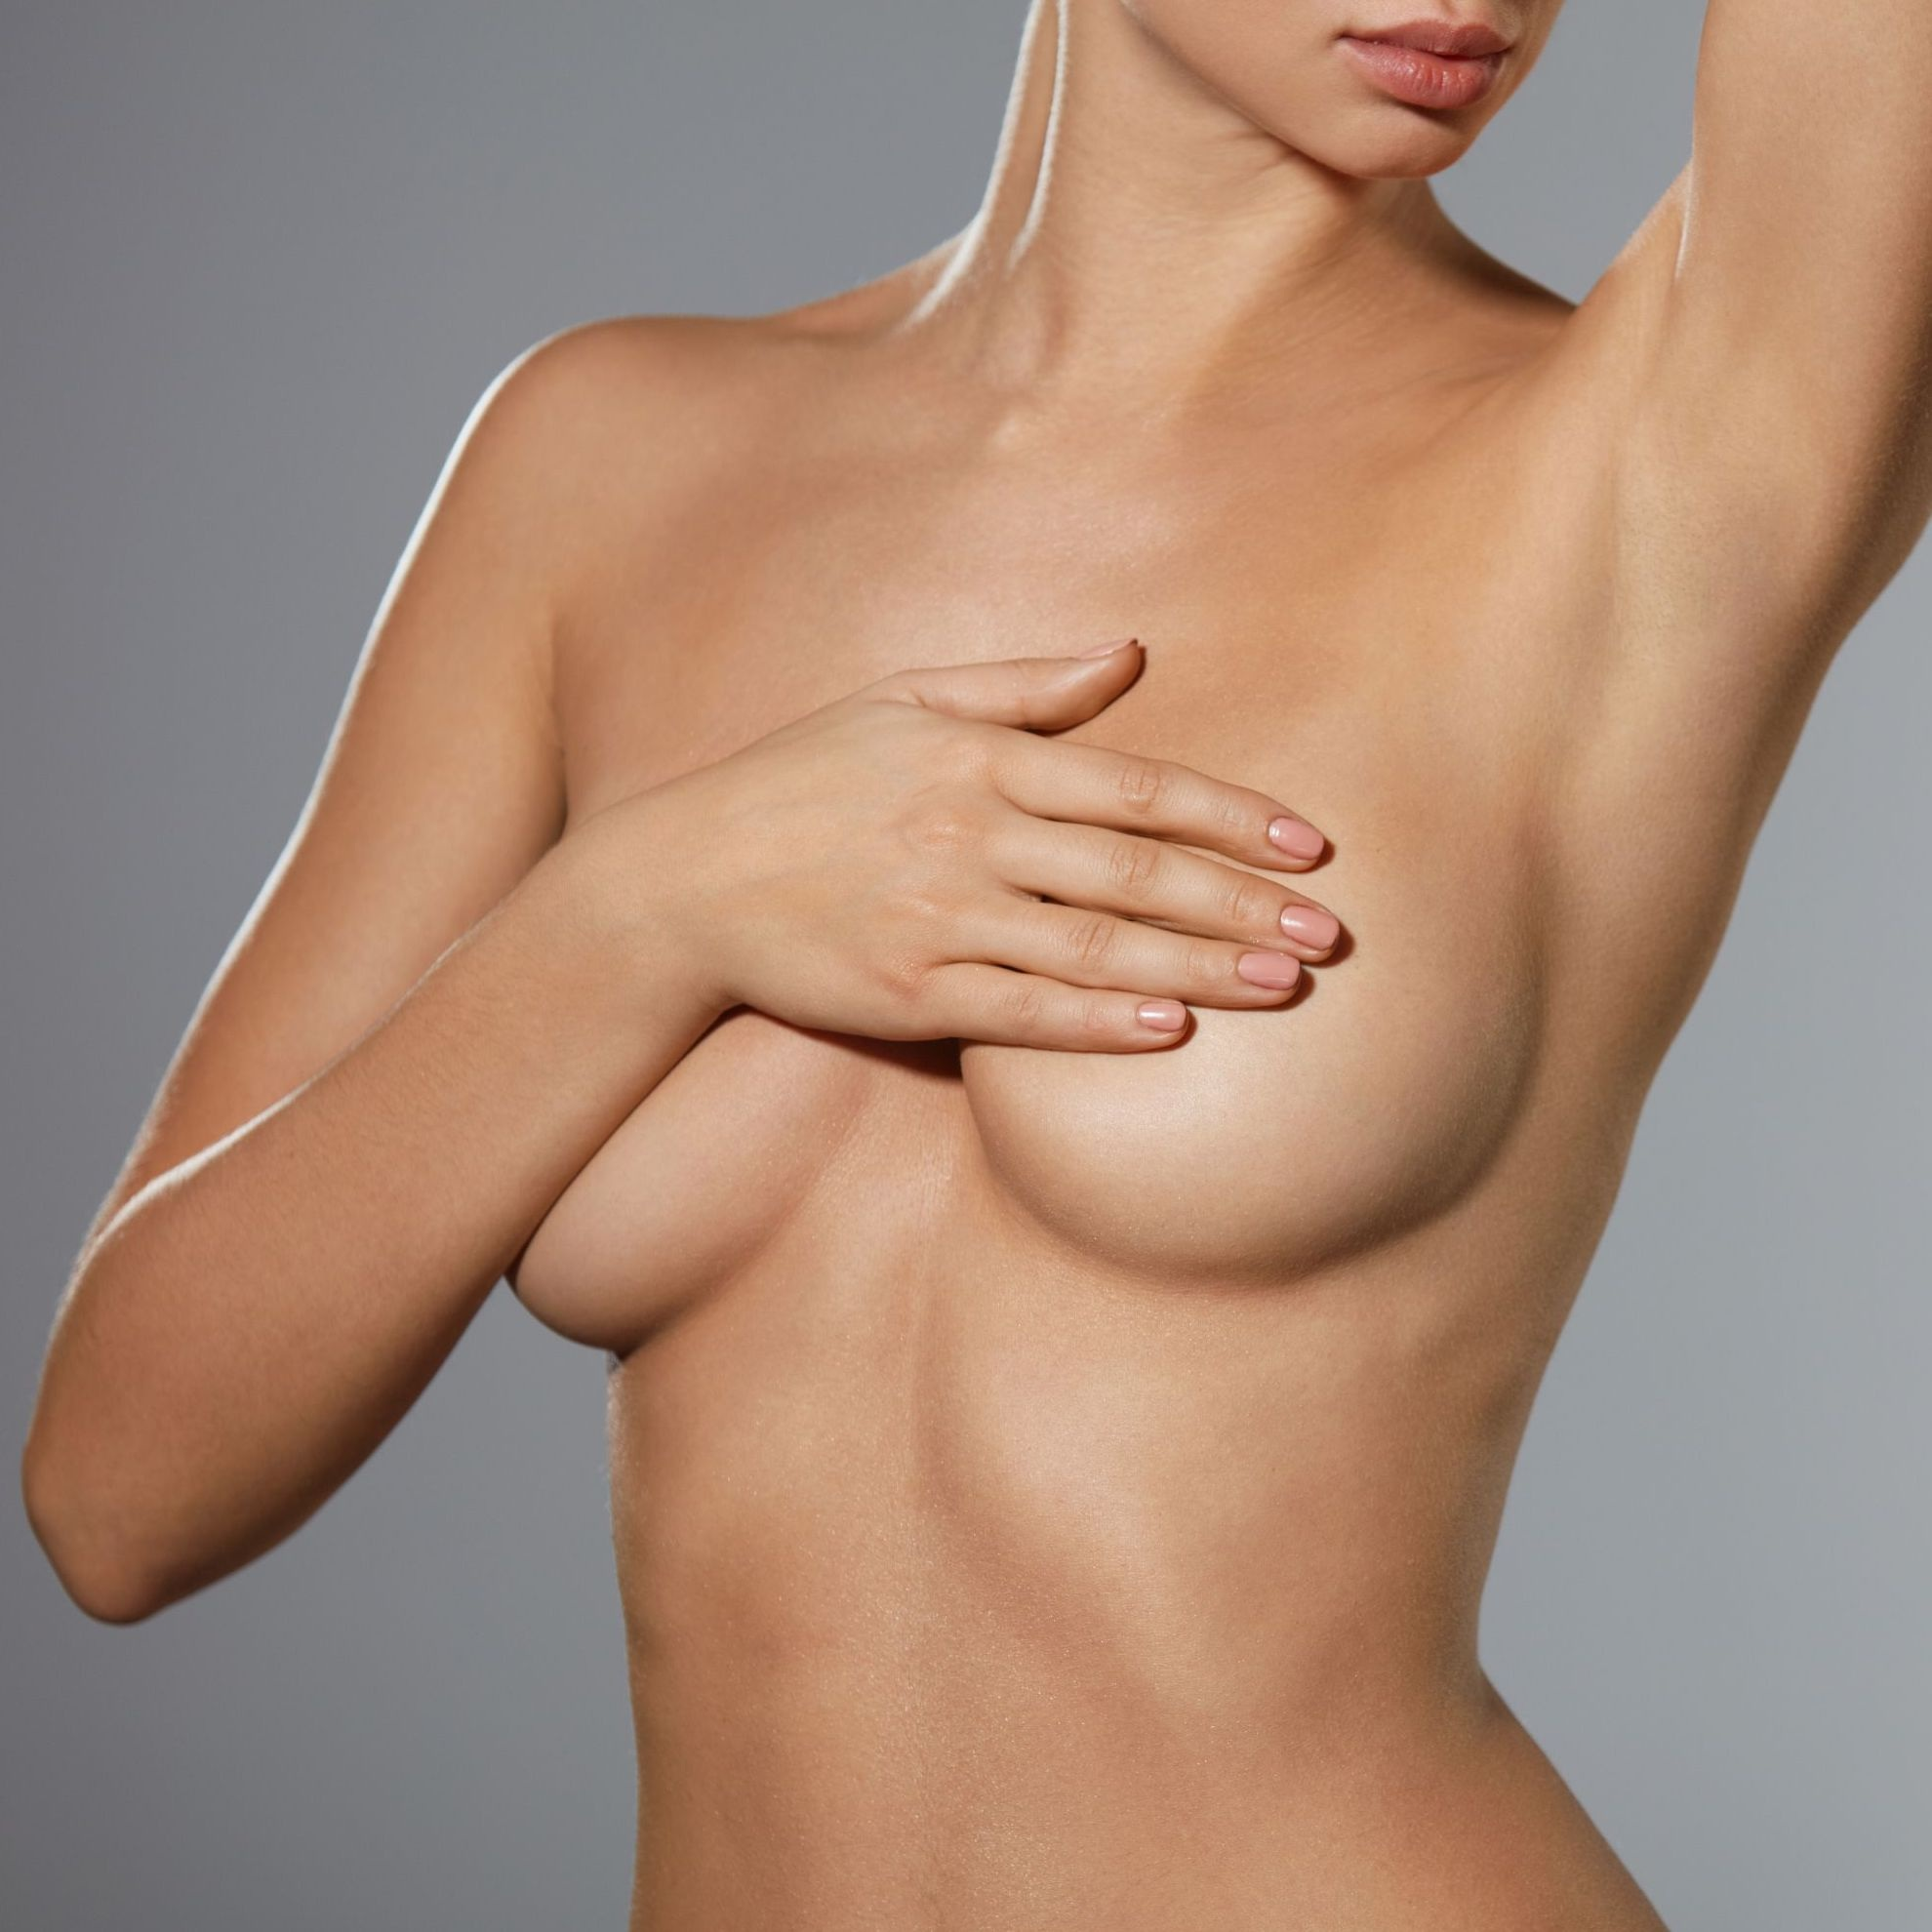 breast capsulectomy - This surgical procedure removes scar tissue (capsules) resulting from the body's reaction to breast implants. This avoids splitting and misshaping.